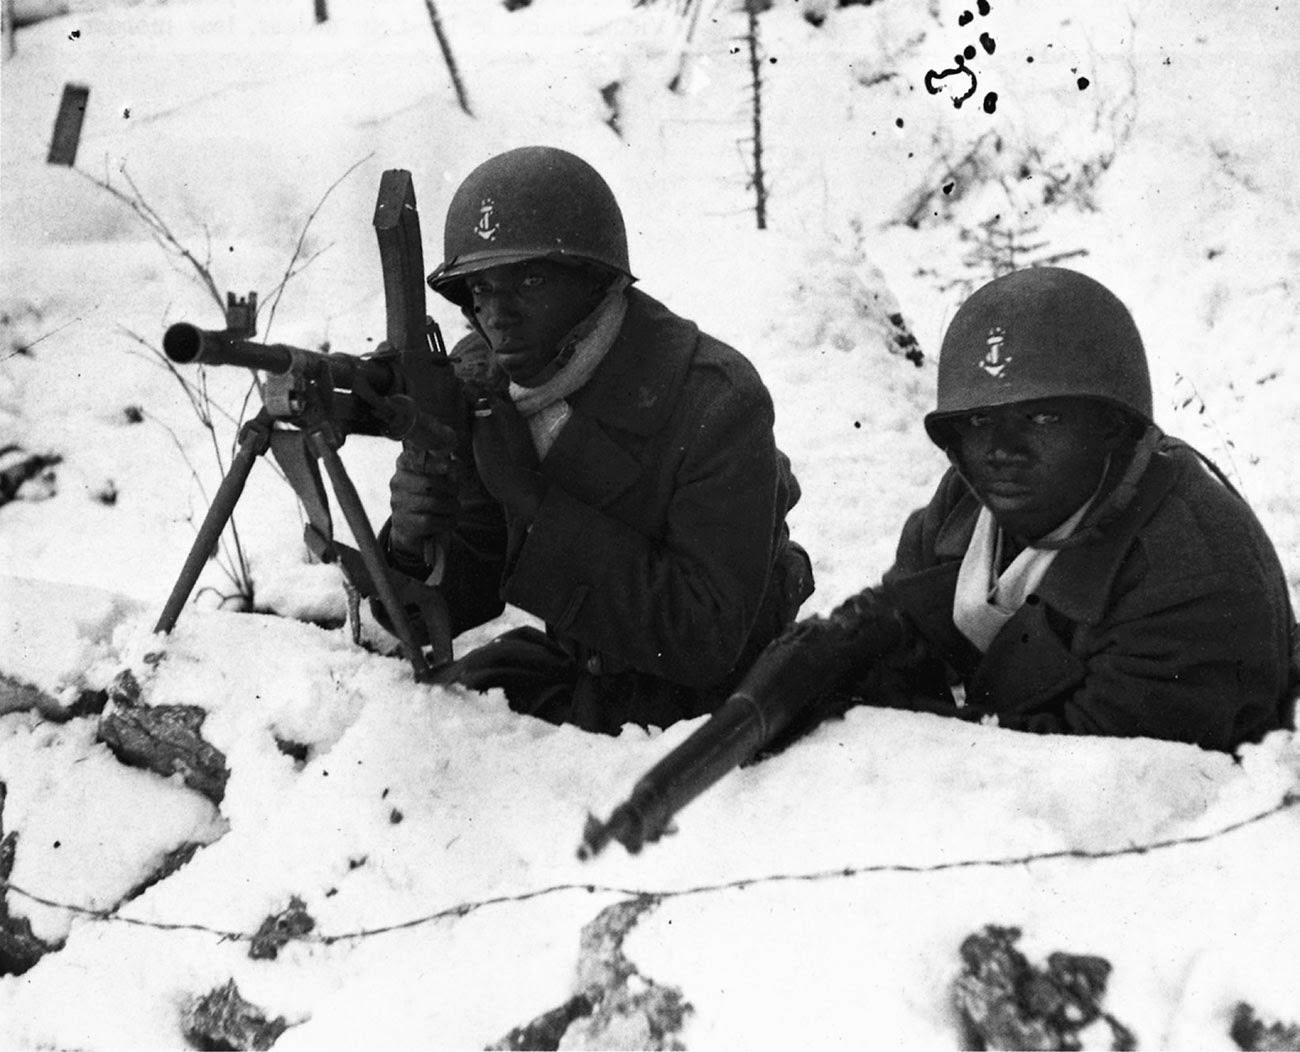 Soldiers from the French African colonies holding a position at Boucle du Doubs, near Besancon, France, winter of 1944.